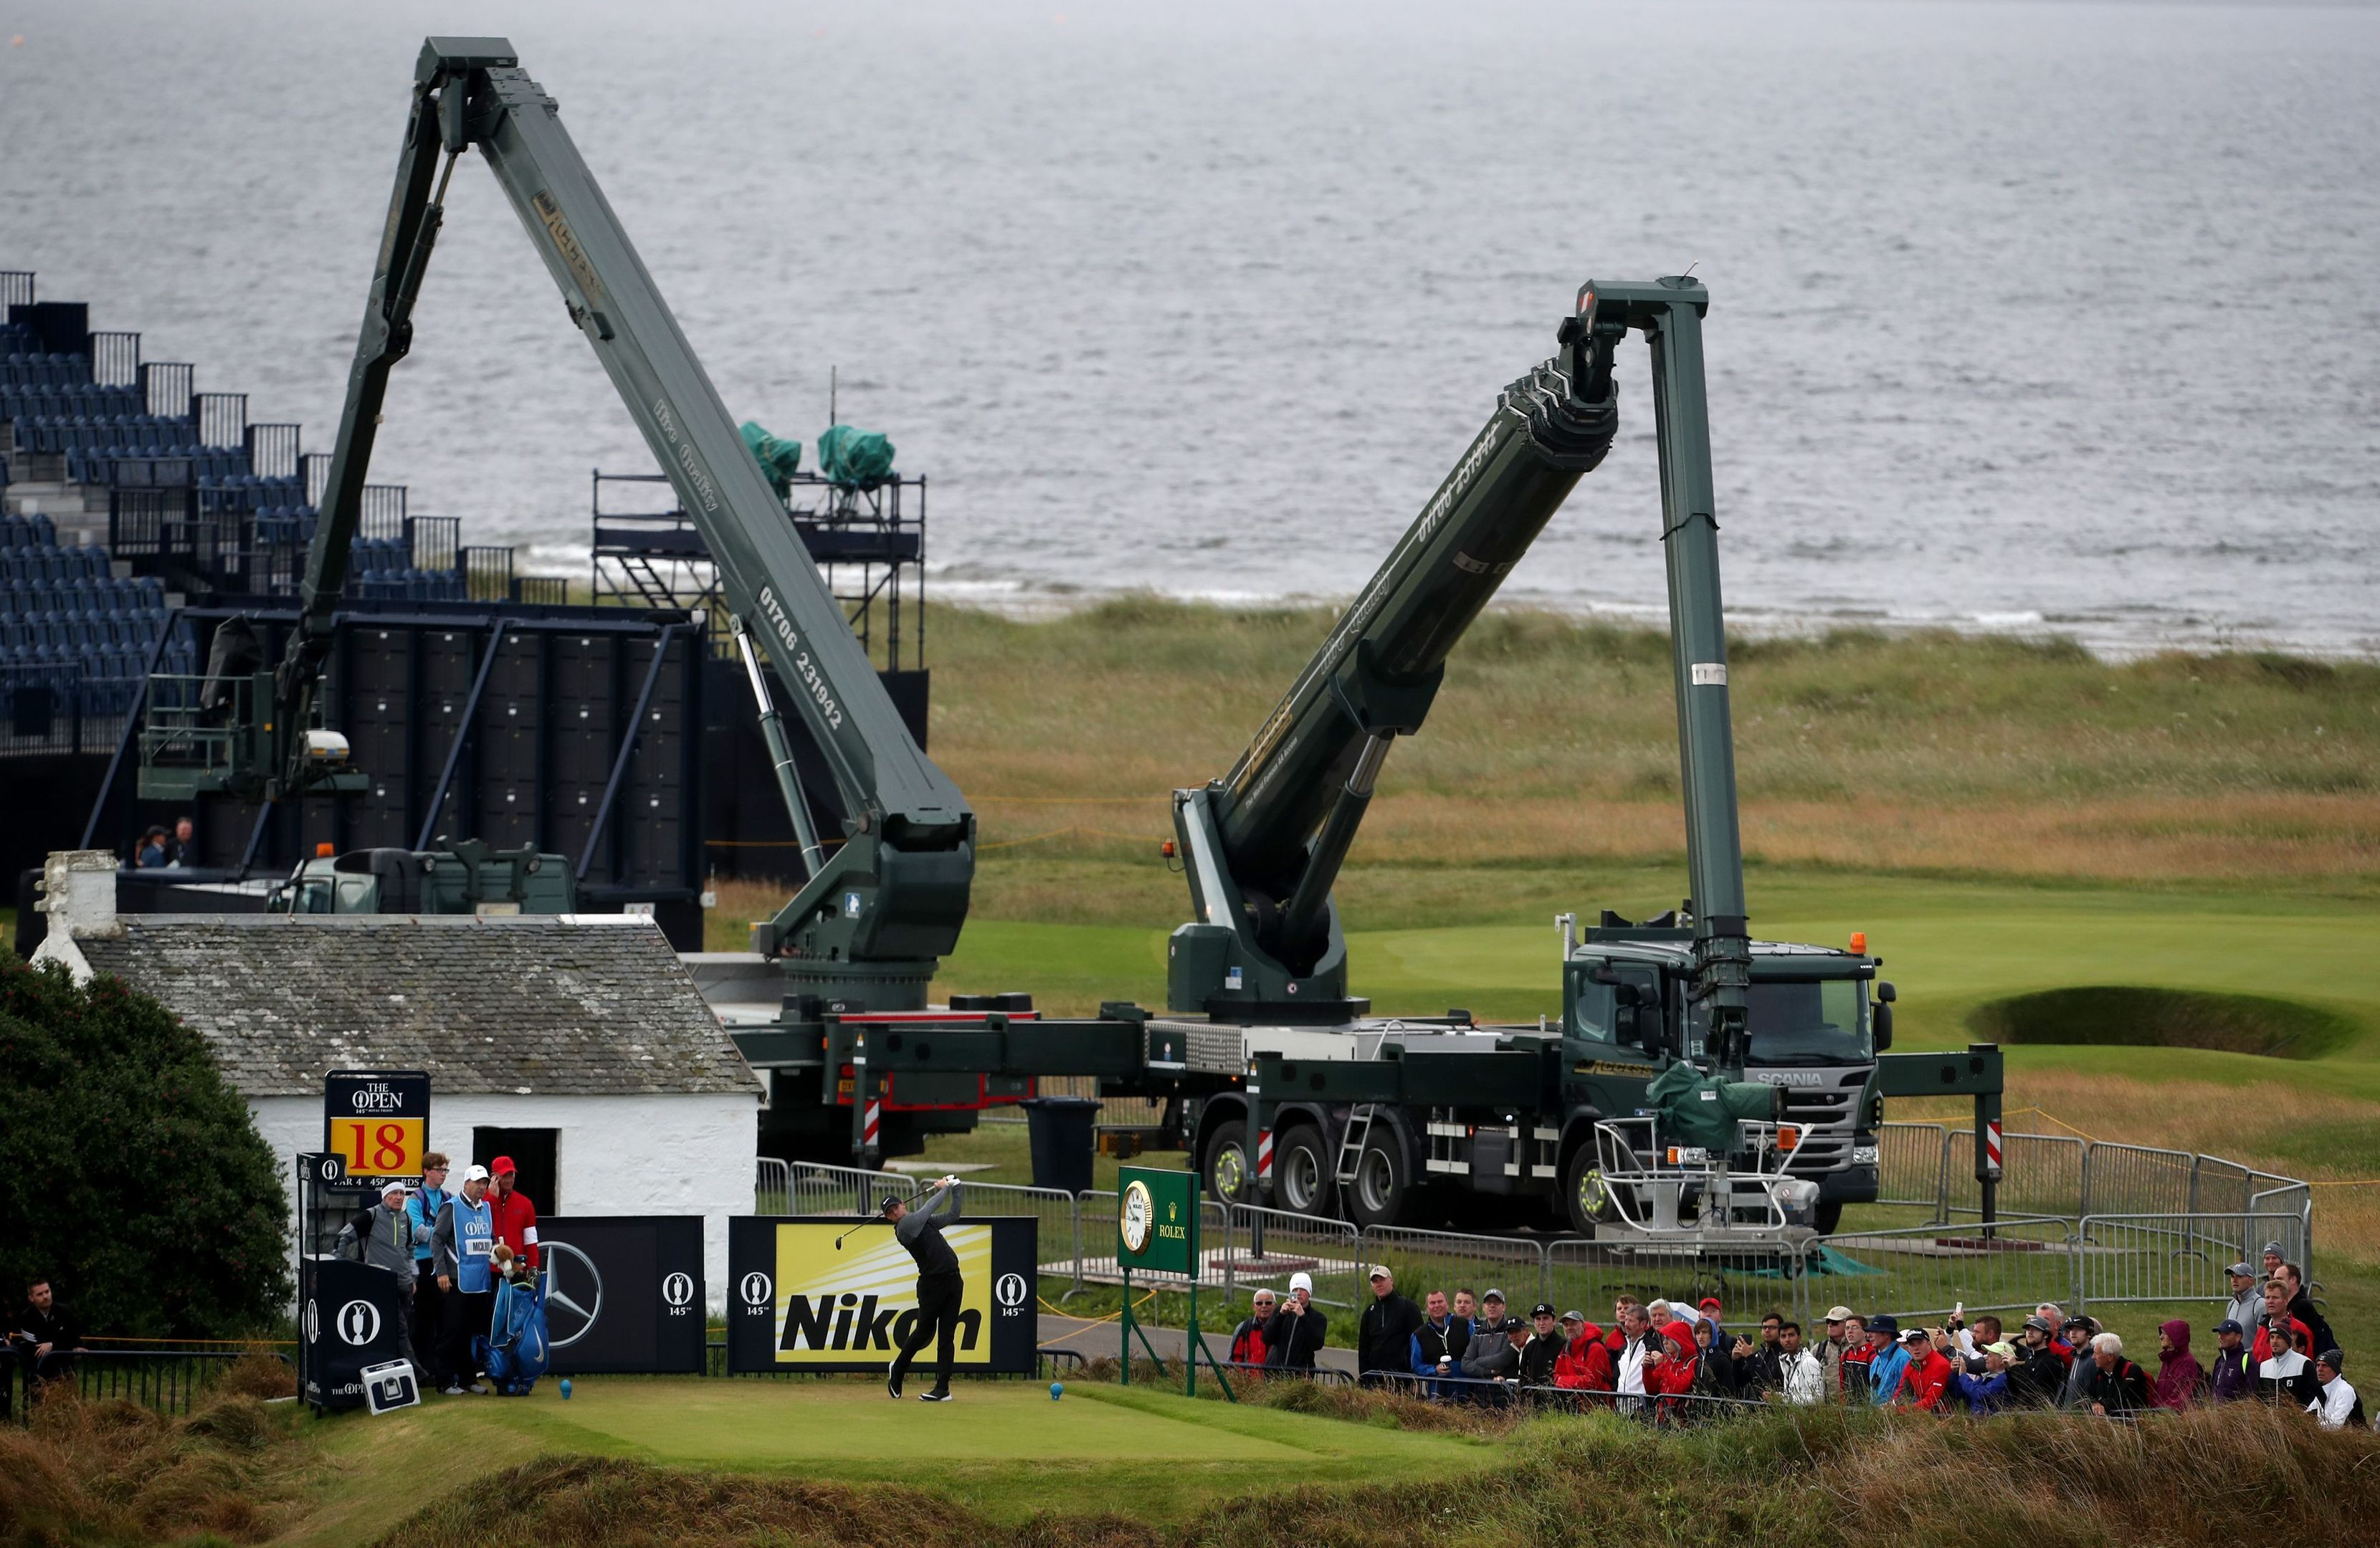 Rory McIlroy tees off the 18th during the final practice day at Royal Troon.